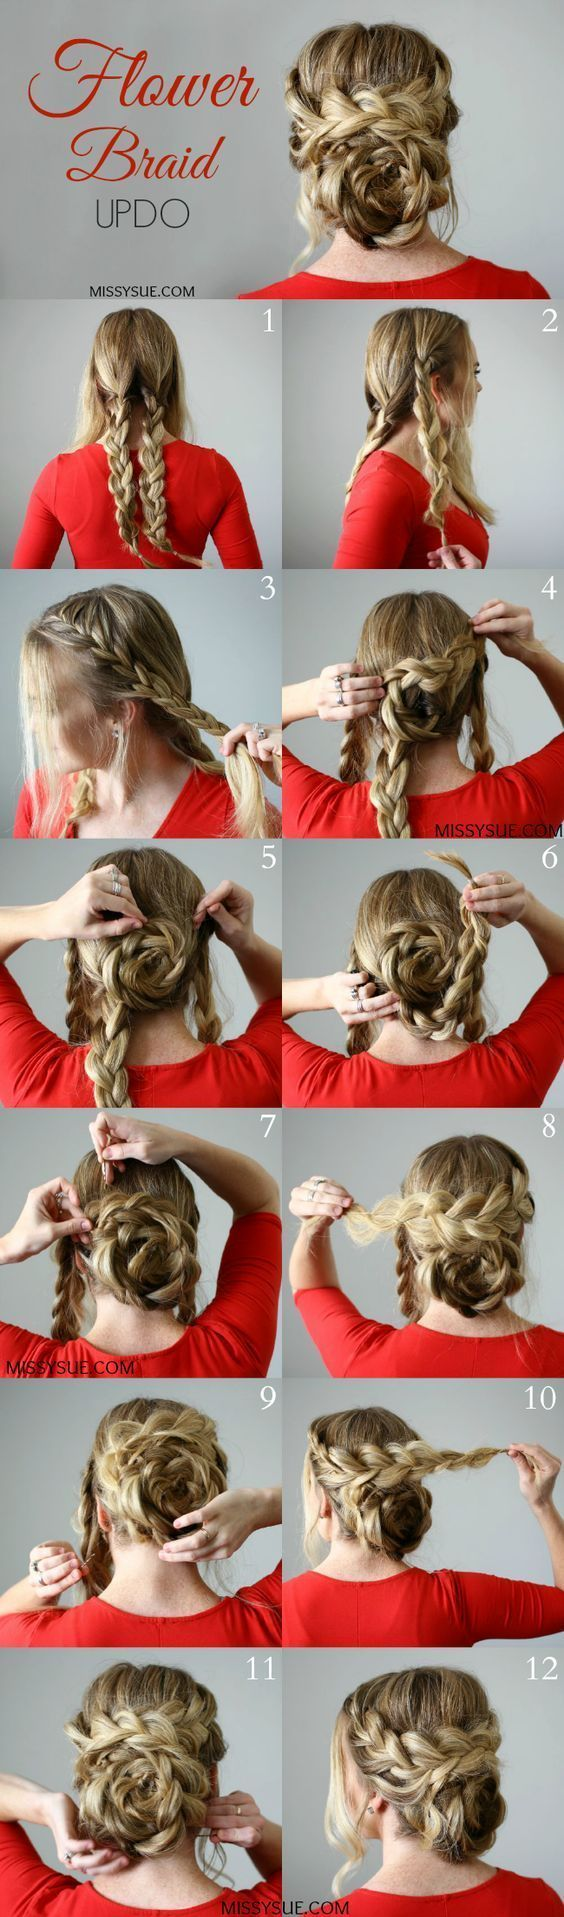 17 Of The Loveliest Updos For Lengthy Hair To Do On Weddings And Proms